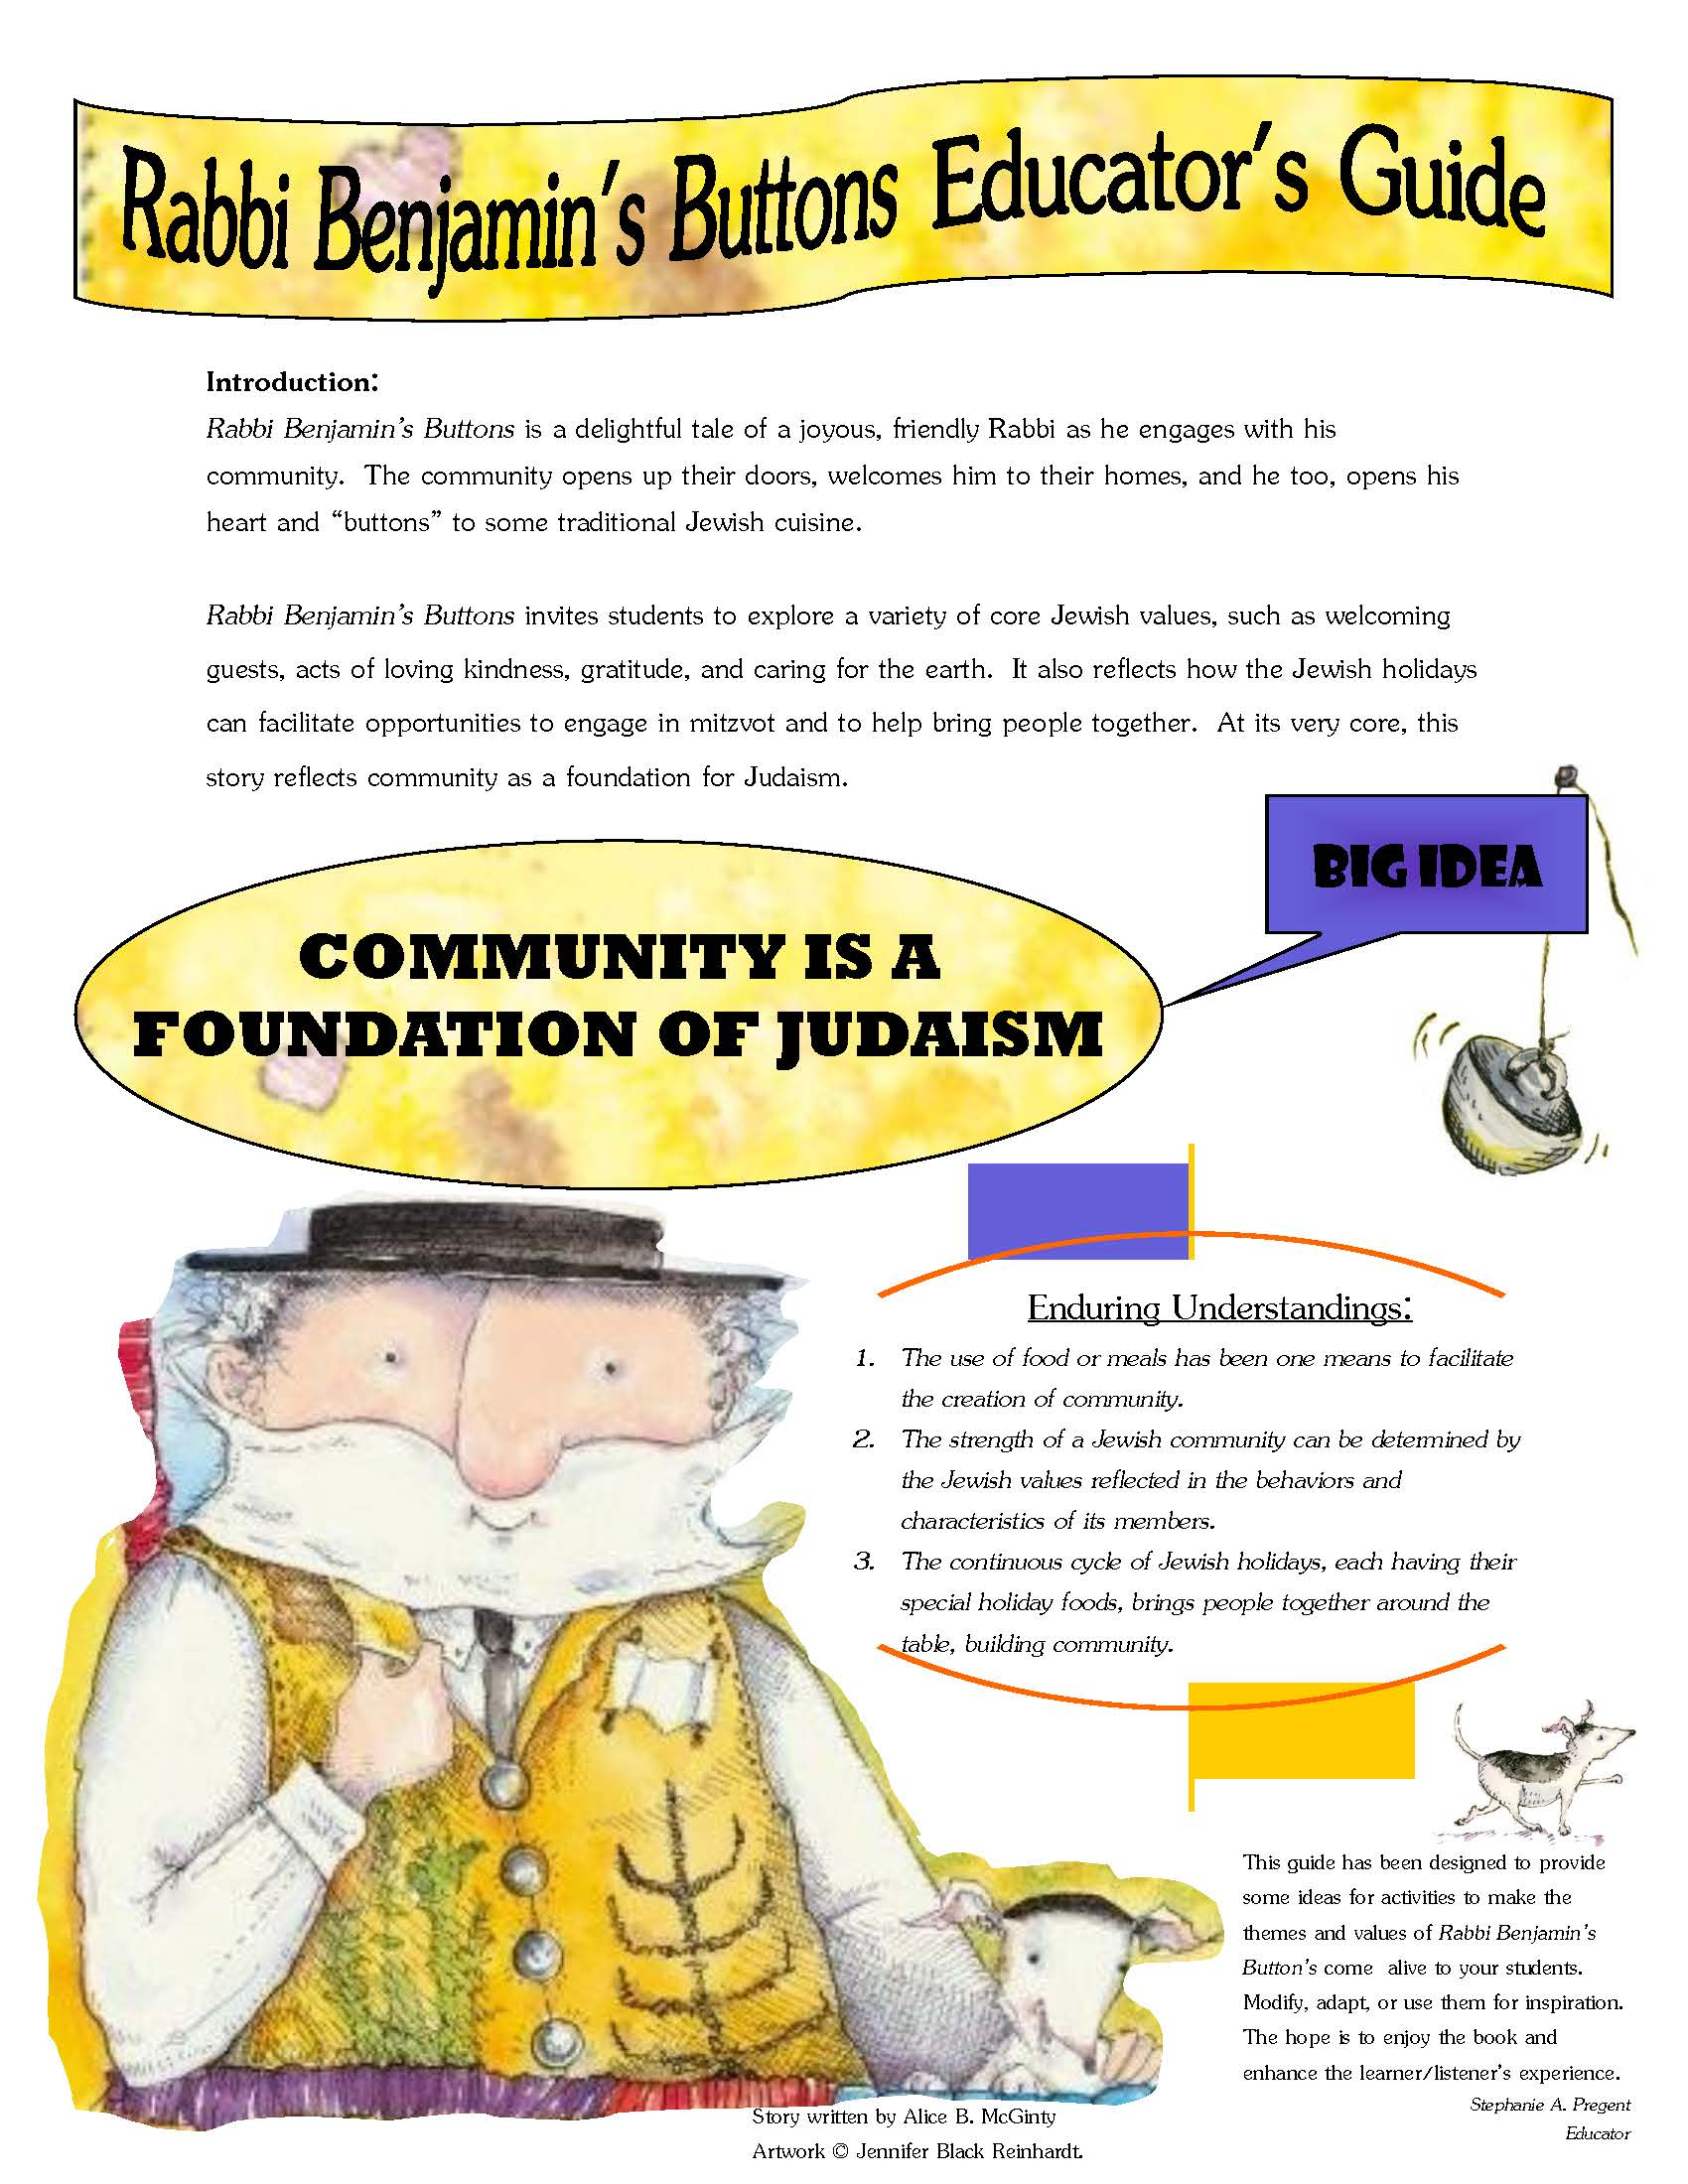 Rabbi Benjamin's Buttons - Includes different activities from bingo, charts, food collage, and many more!